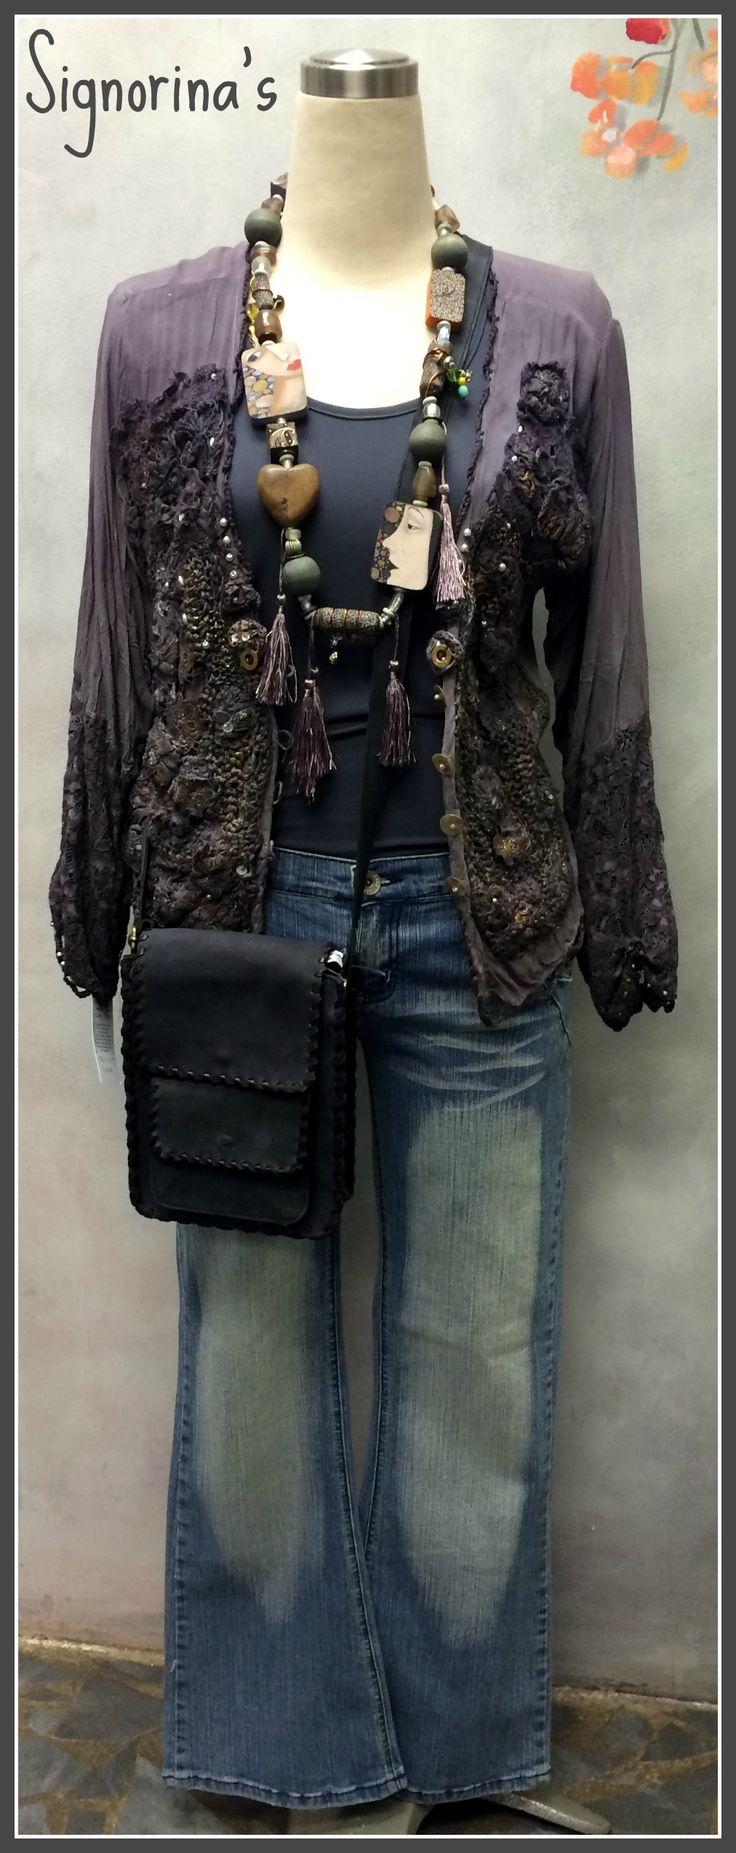 New designs - bag, Jacket and jeans